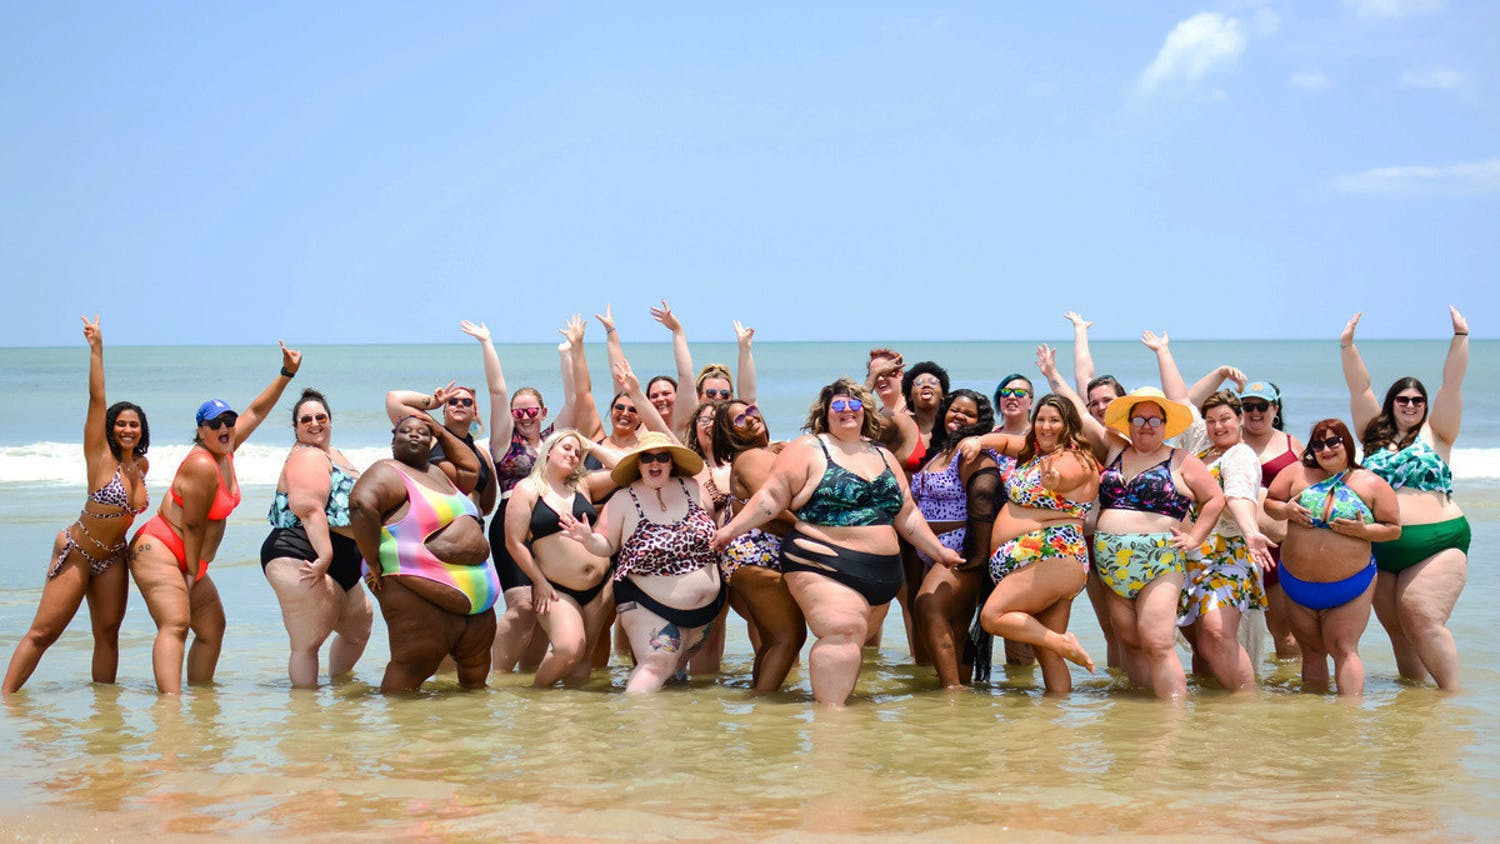 Curvy Confidence members at the Summer Swim Soiree on Saturday, June 12, 2021, at Mickler Landing, Florida. (Photo by Jonathan Vickers | Courtesy to The Alligator)